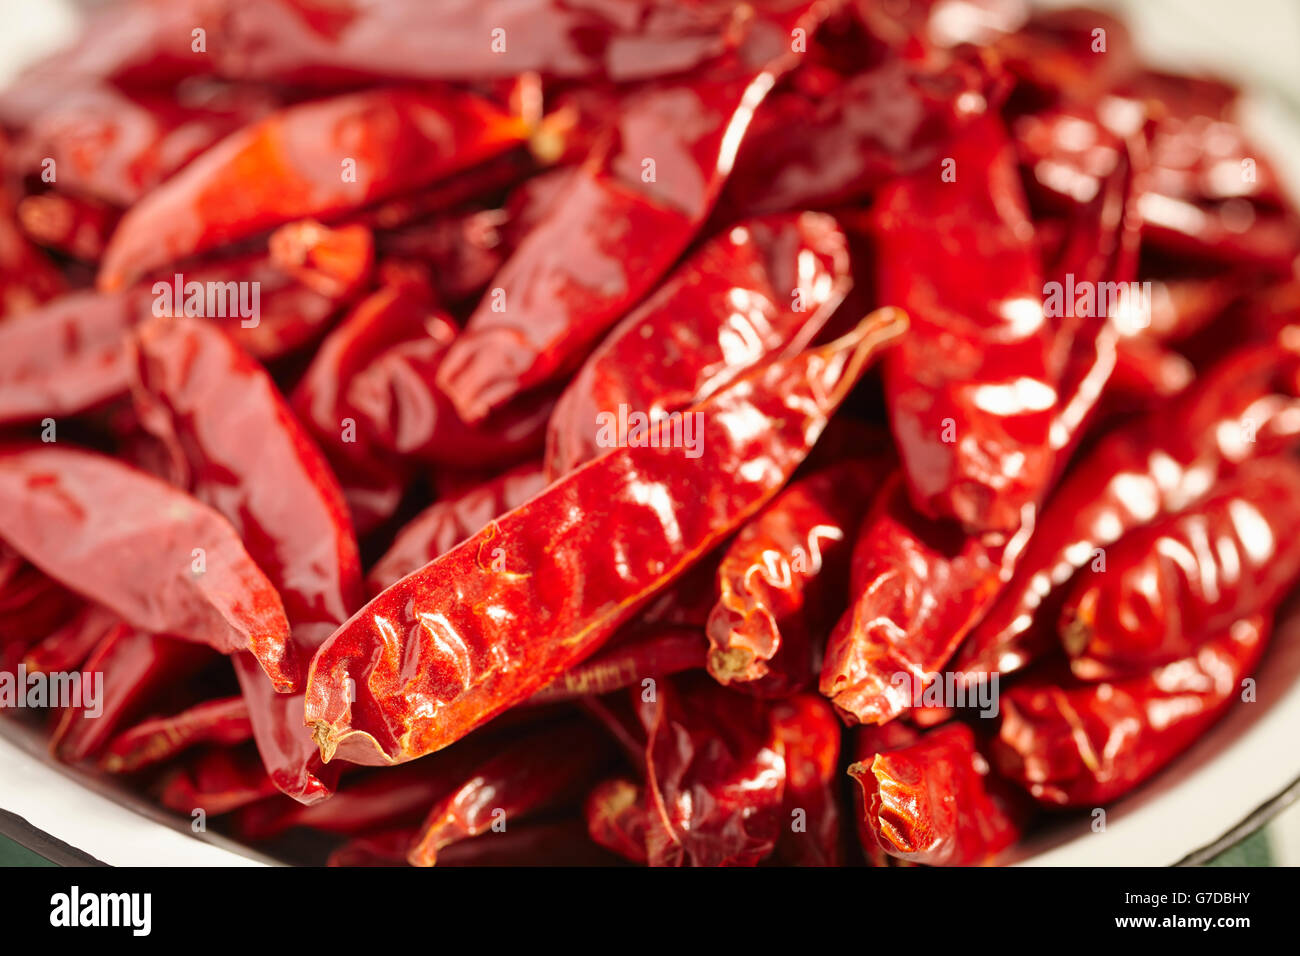 Dried Chinese Chili Peppers - Stock Image